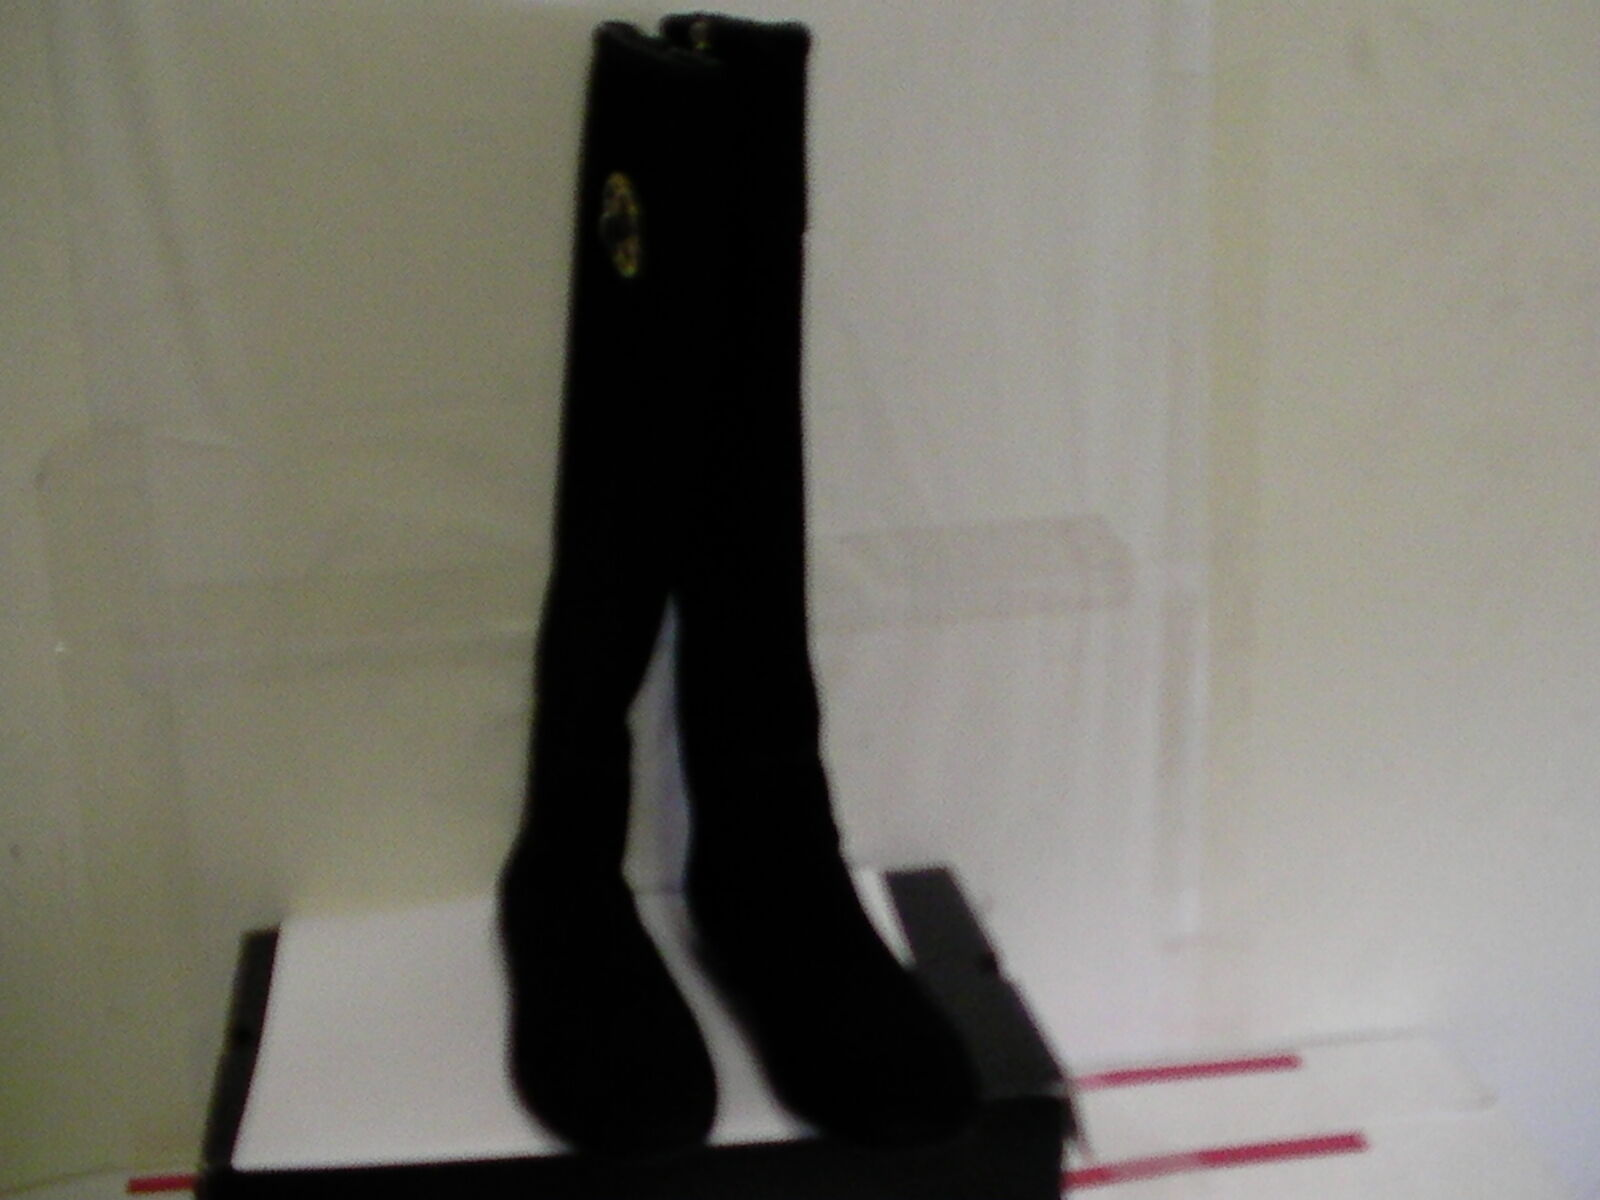 TORY BURCH IRENE EQUESTRIAN CALF RIDING BOOTS SOFTY SUEDE size 5 women